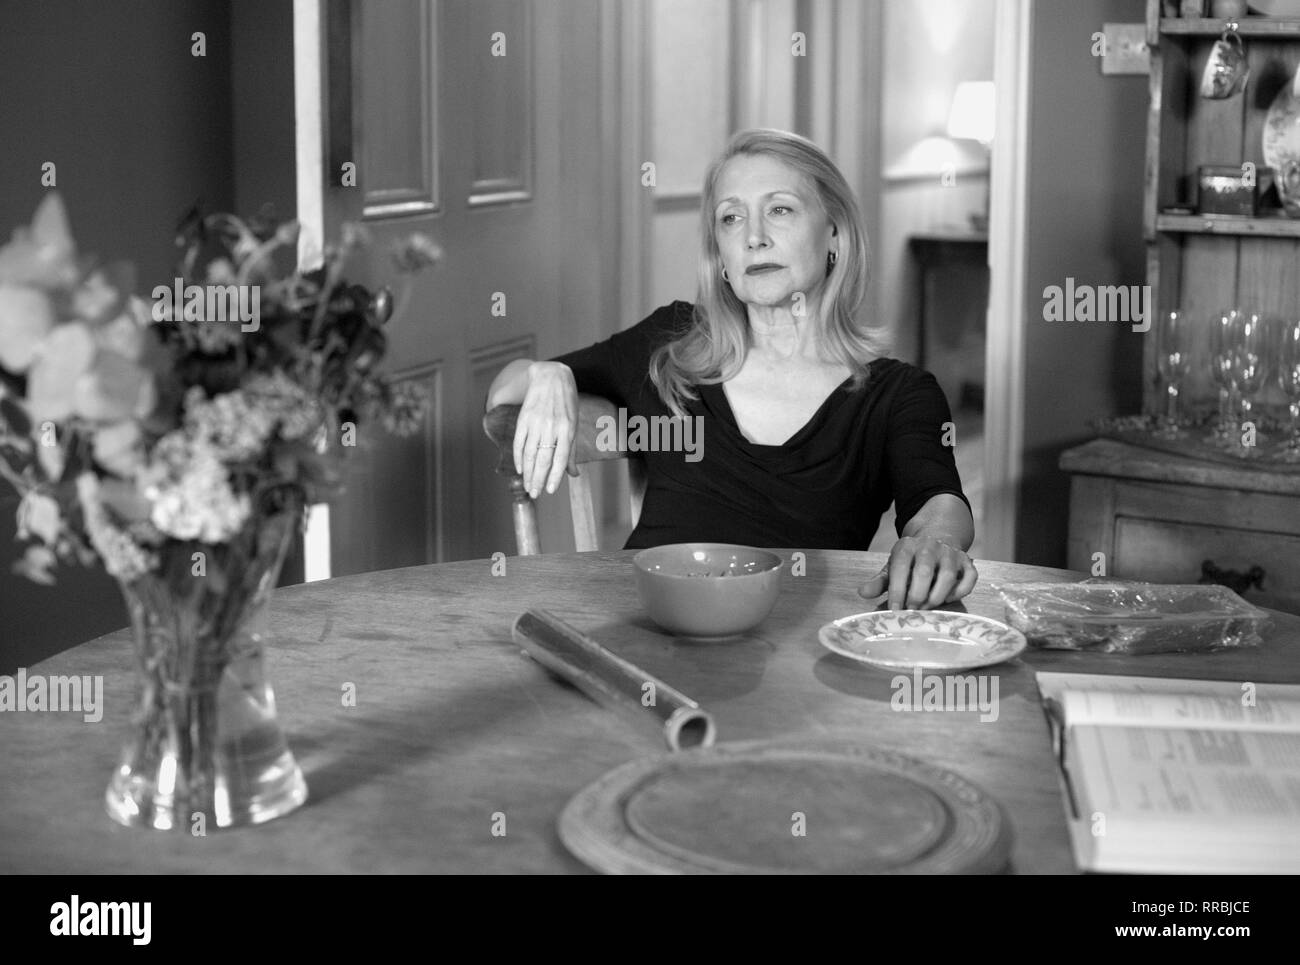 THE PARTY, PATRICIA CLARKSON, 2017 - Stock Image